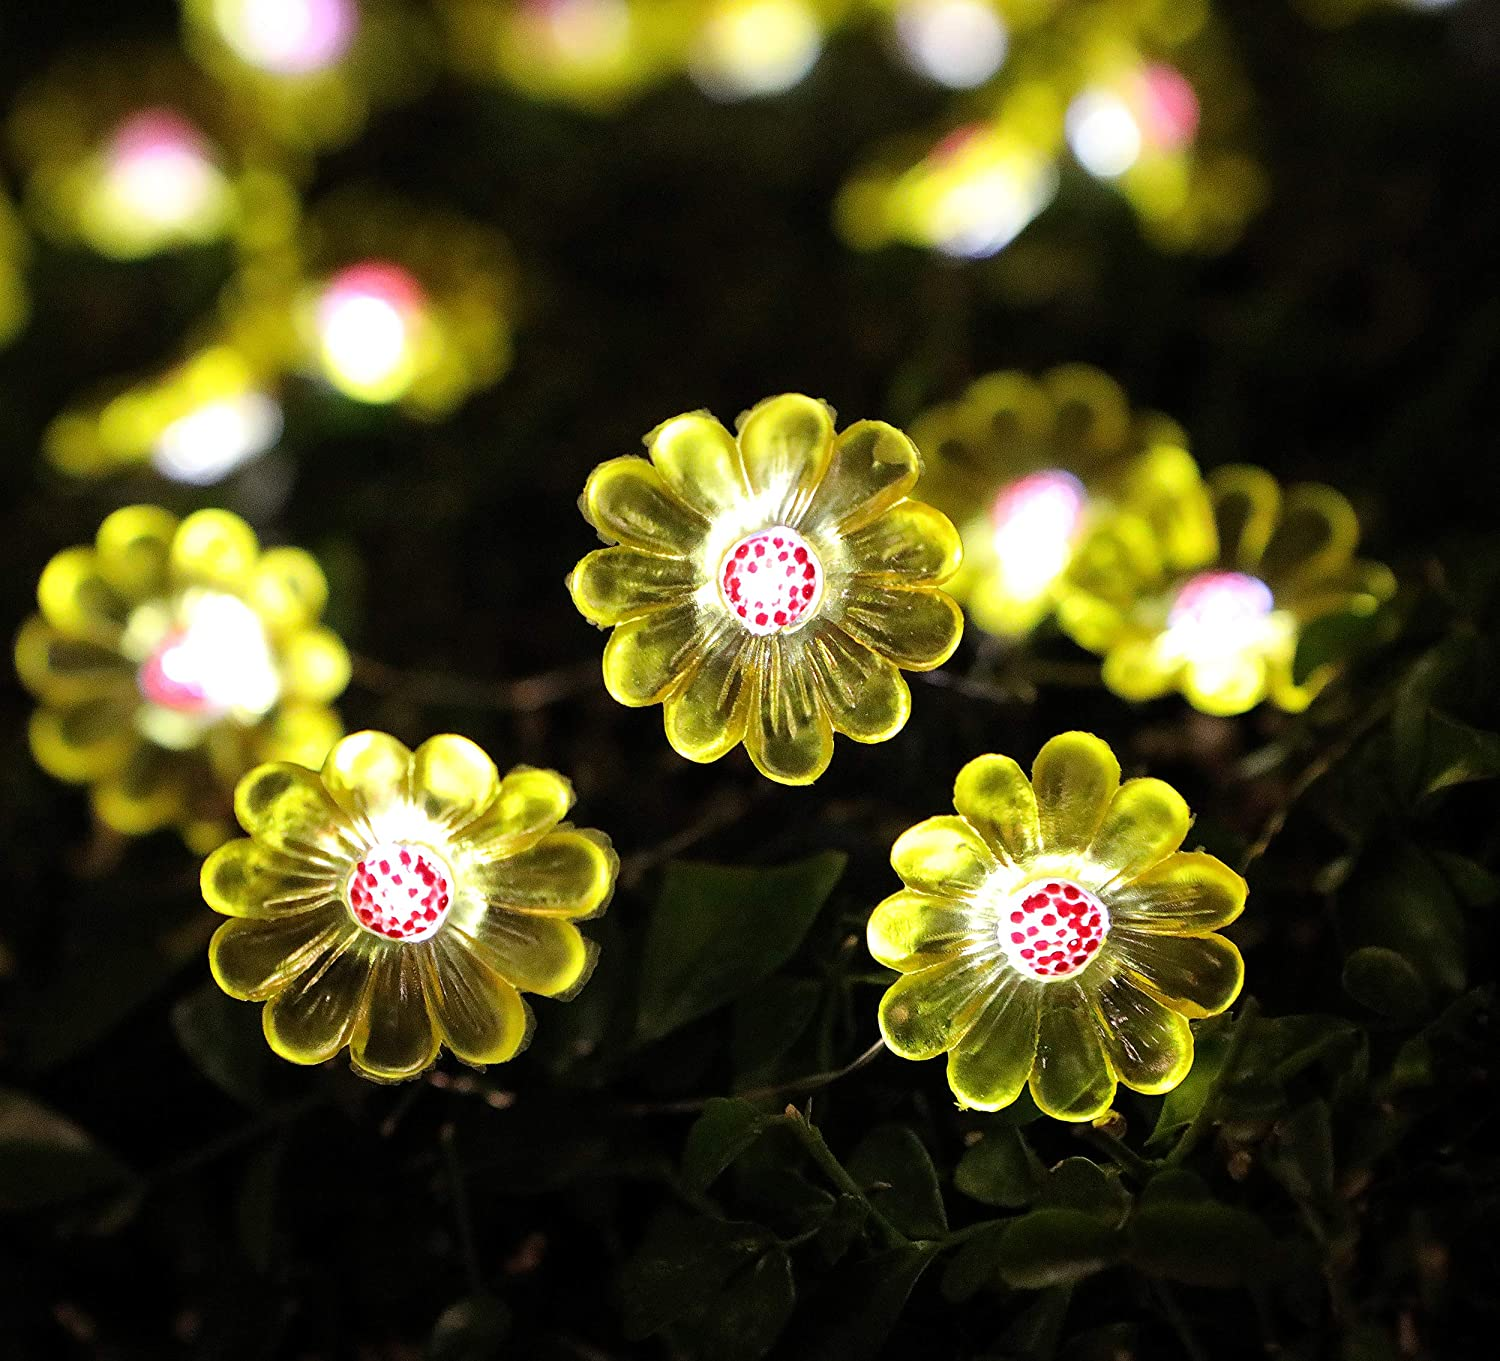 WSgift Solar Flower String Lights, 15.8 Ft 30 Cold White LED Outdoor Waterproof Daisy Fairy String Lights for Garden Yard Outdoor Decorations